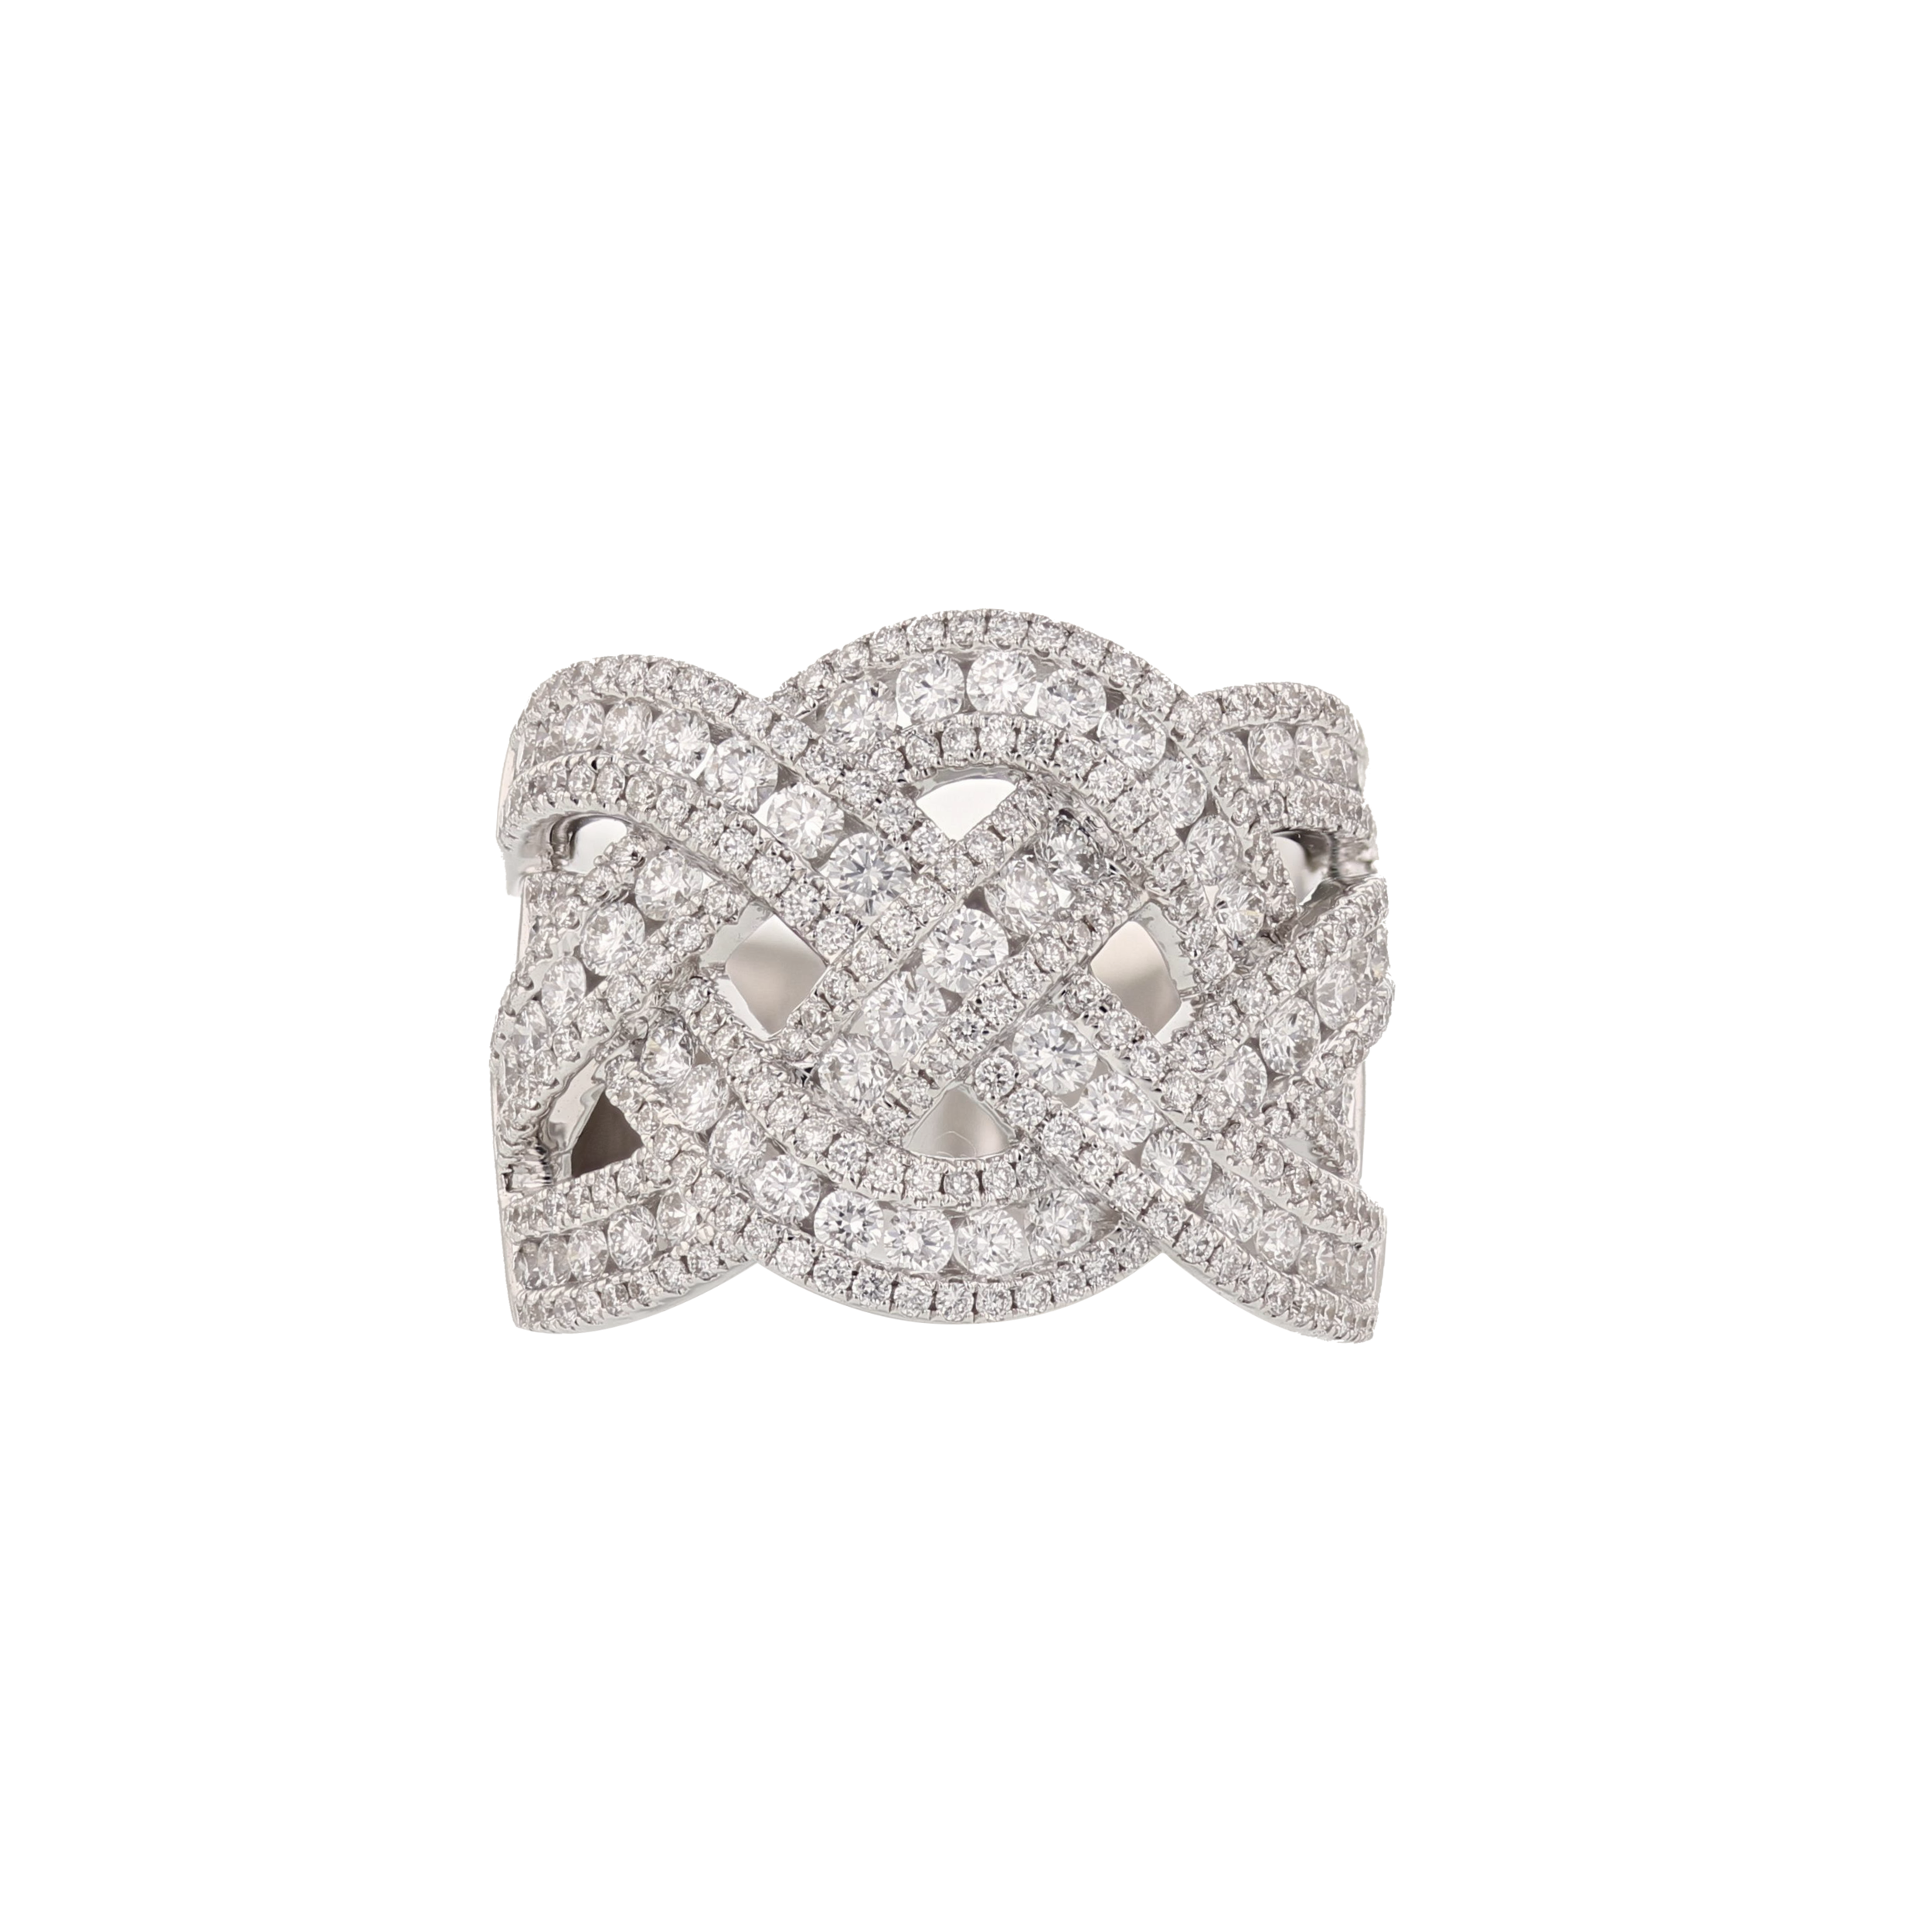 14 w/g 2 ctw. Diamond ring. $8975